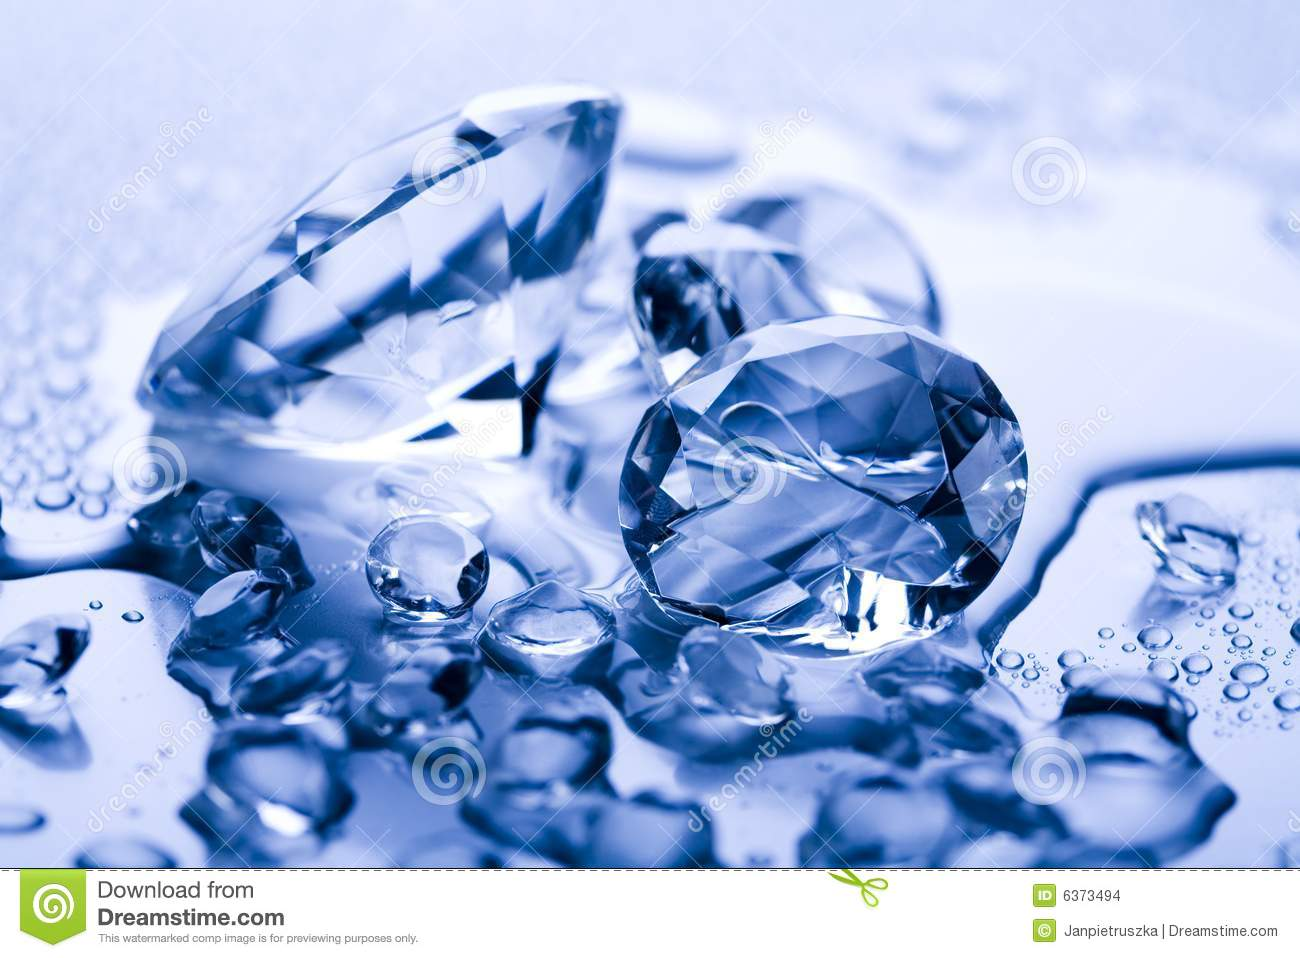 Water & Diamond Stock Images - Image: 6373494